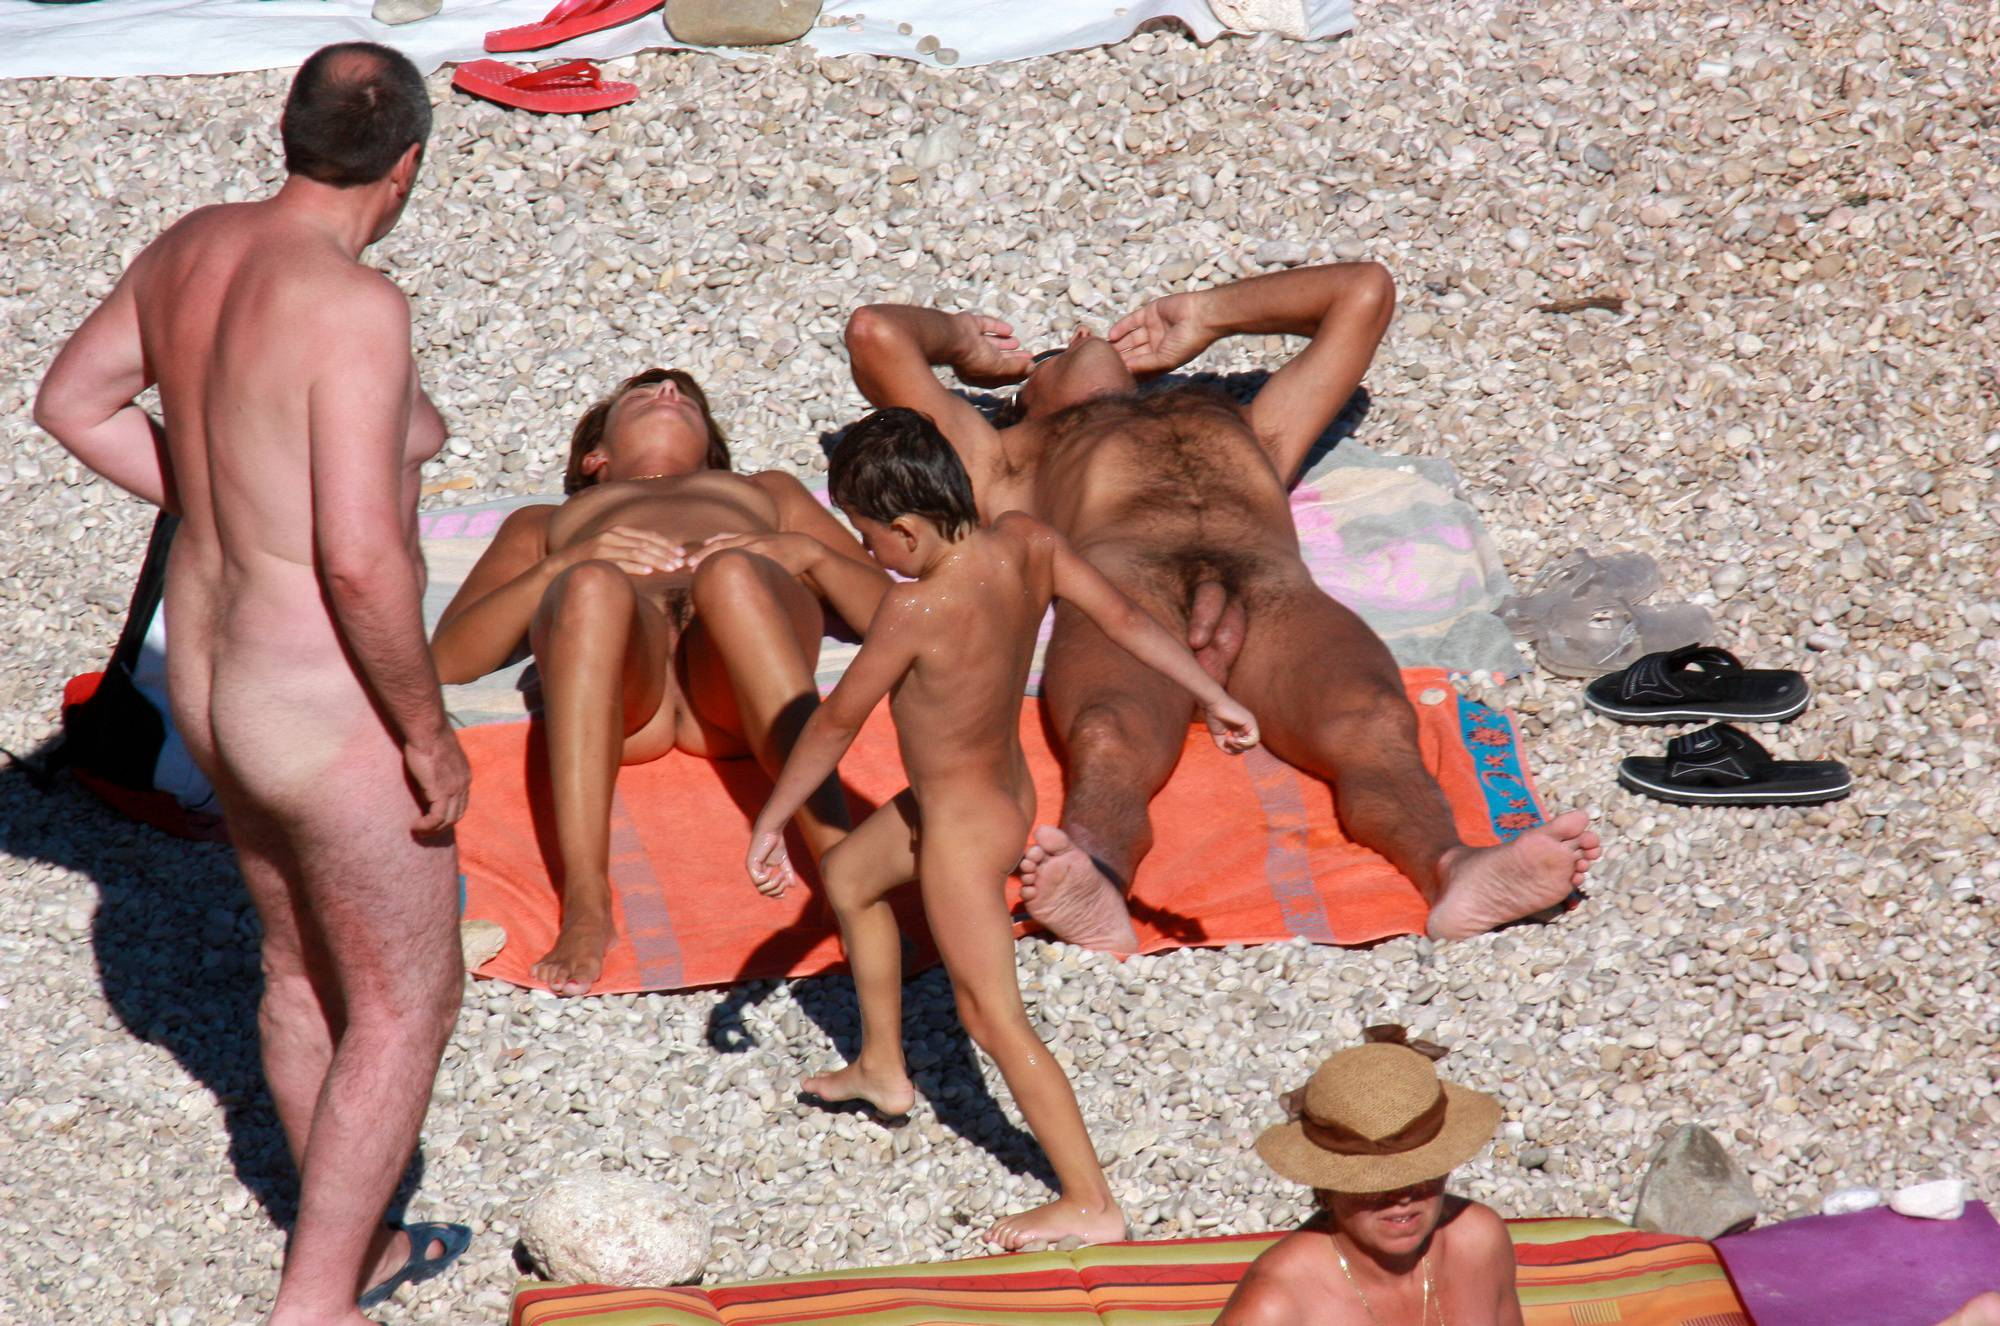 Purenudism Pics-From Nude Waters to Land - 2